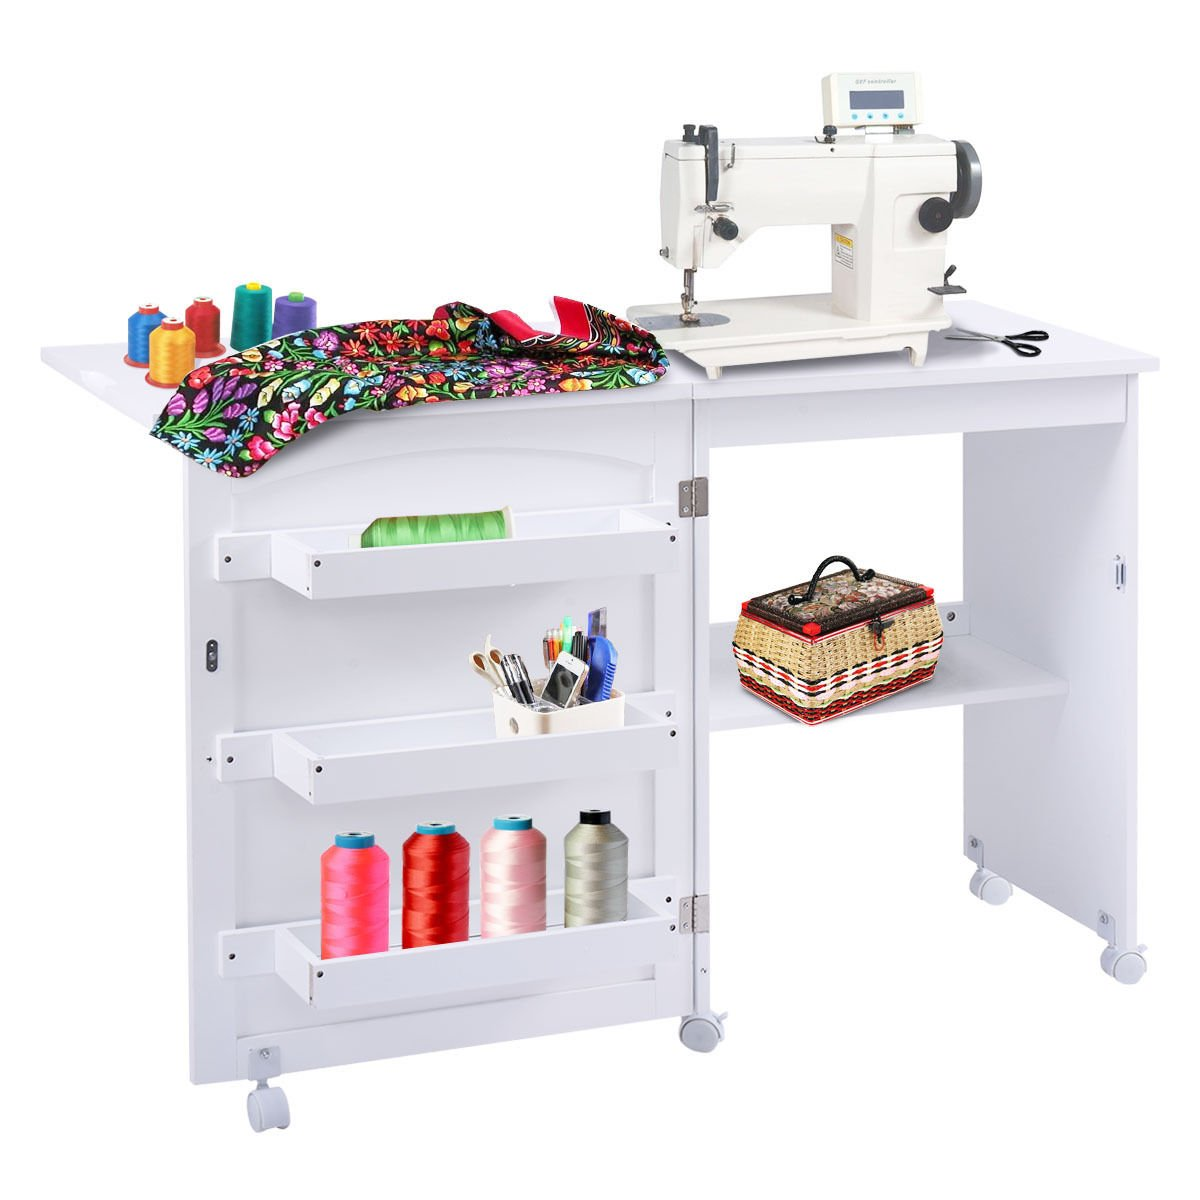 Amazon.com Giantex White Folding Sewing Craft Cart Table Shelves Storage Cabinet Home Furniture W/ Wheels  sc 1 st  Amazon.com & Amazon.com: Giantex White Folding Sewing Craft Cart Table Shelves ...